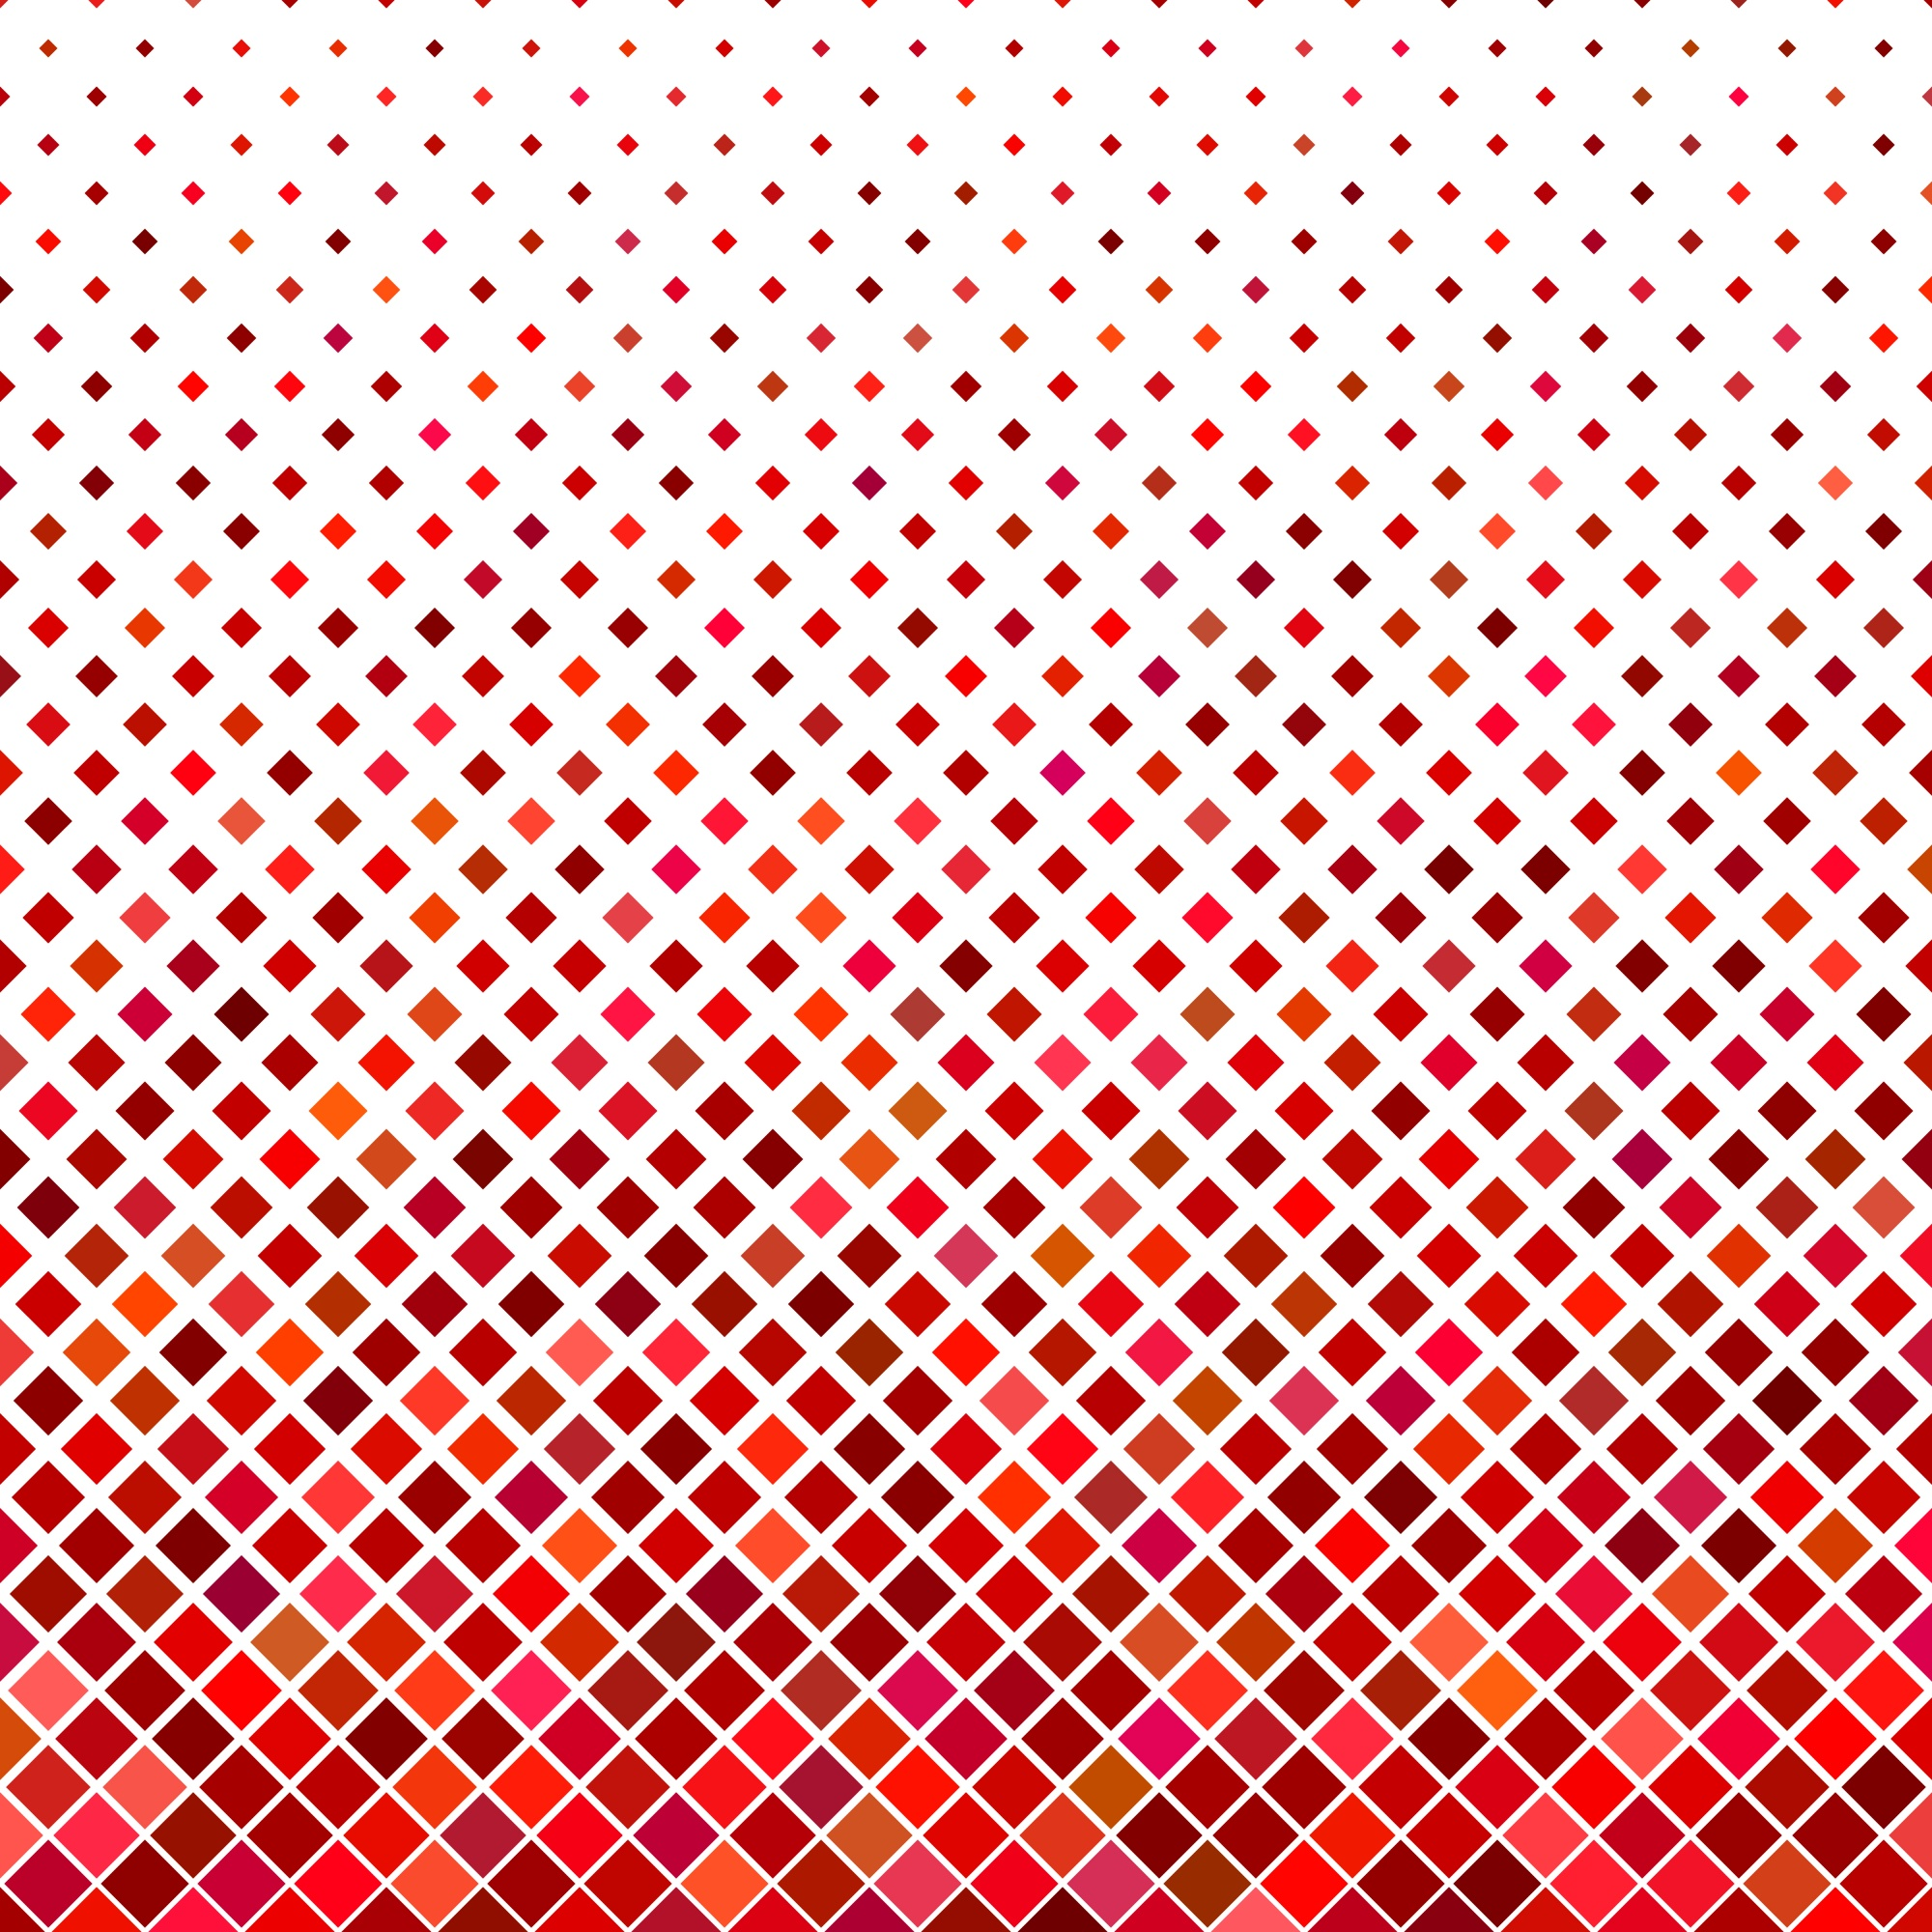 Abstract diagonal square pattern background - geometric vector graphic from squares in red tones